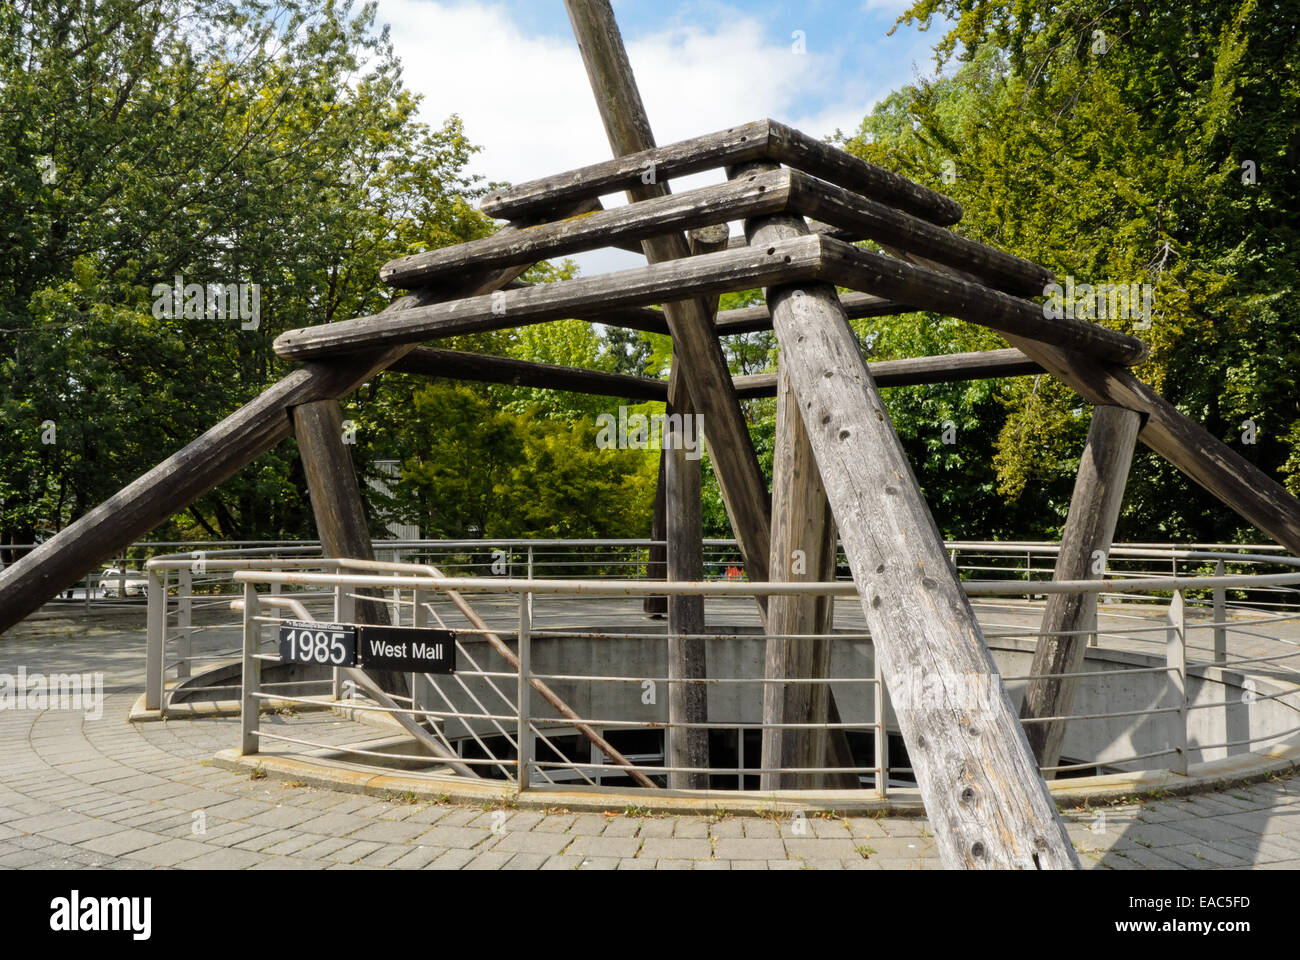 Entrance to First Nations Longhouse at University of British Columbia - Stock Image